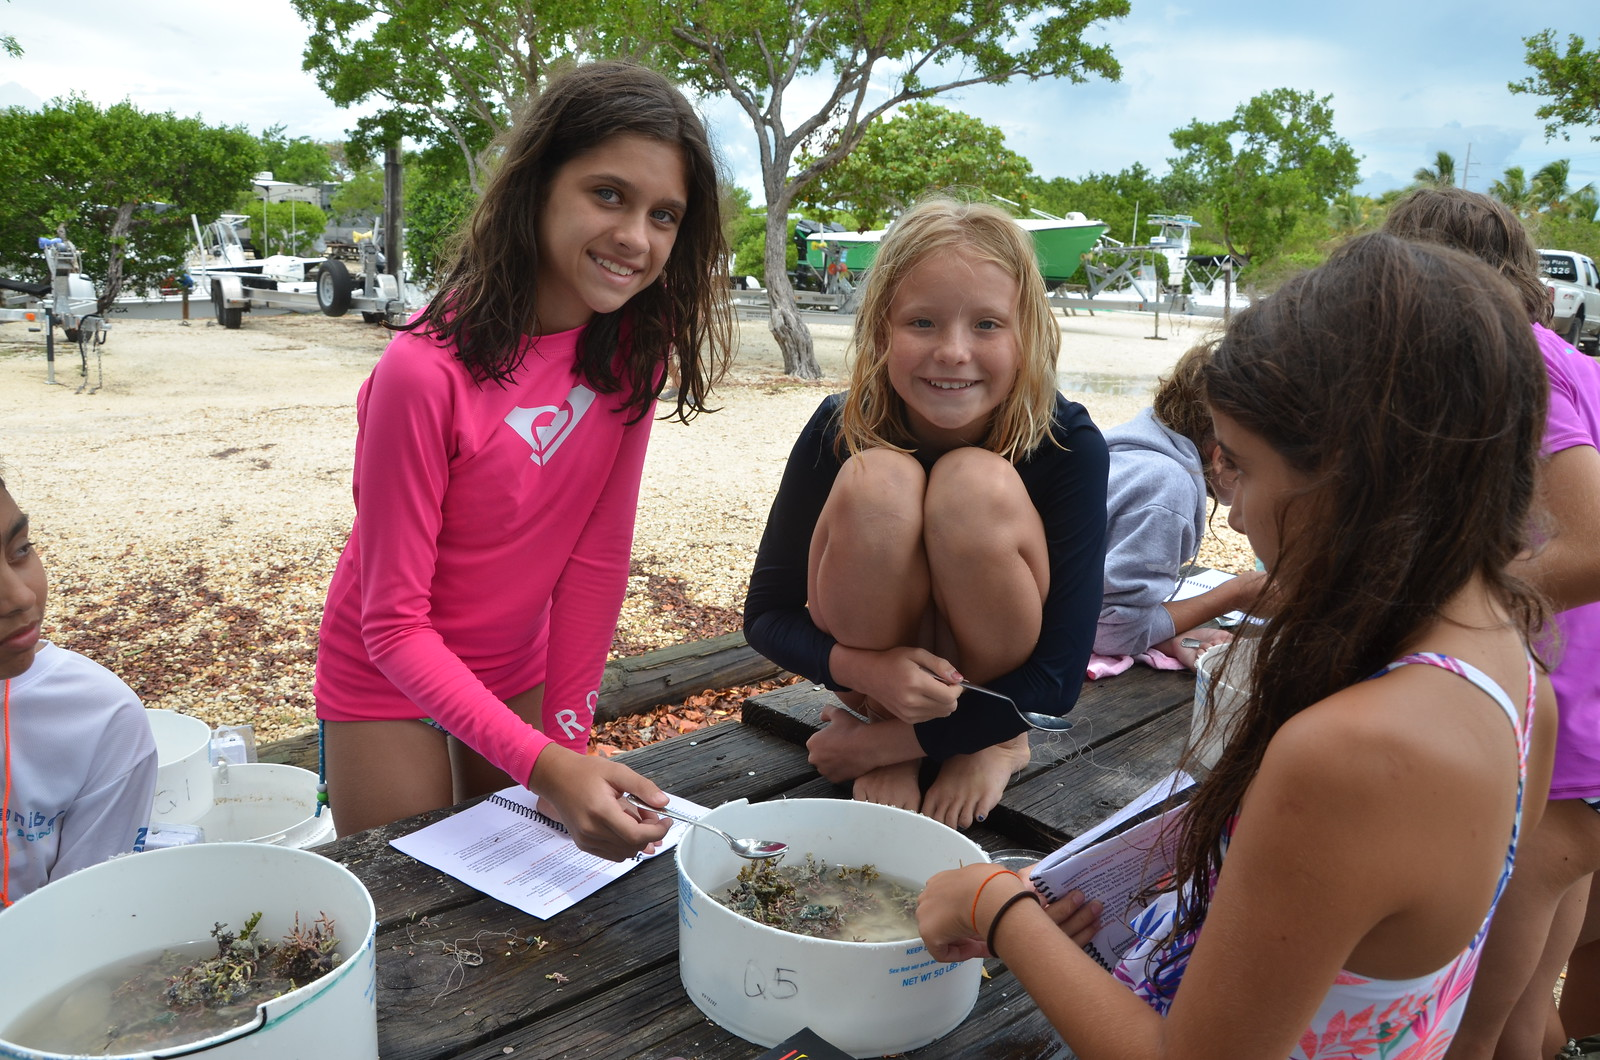 Coralline algae provides habitat for thousands of invertebrates. During a lab, campers tried to identify as many species as possible.